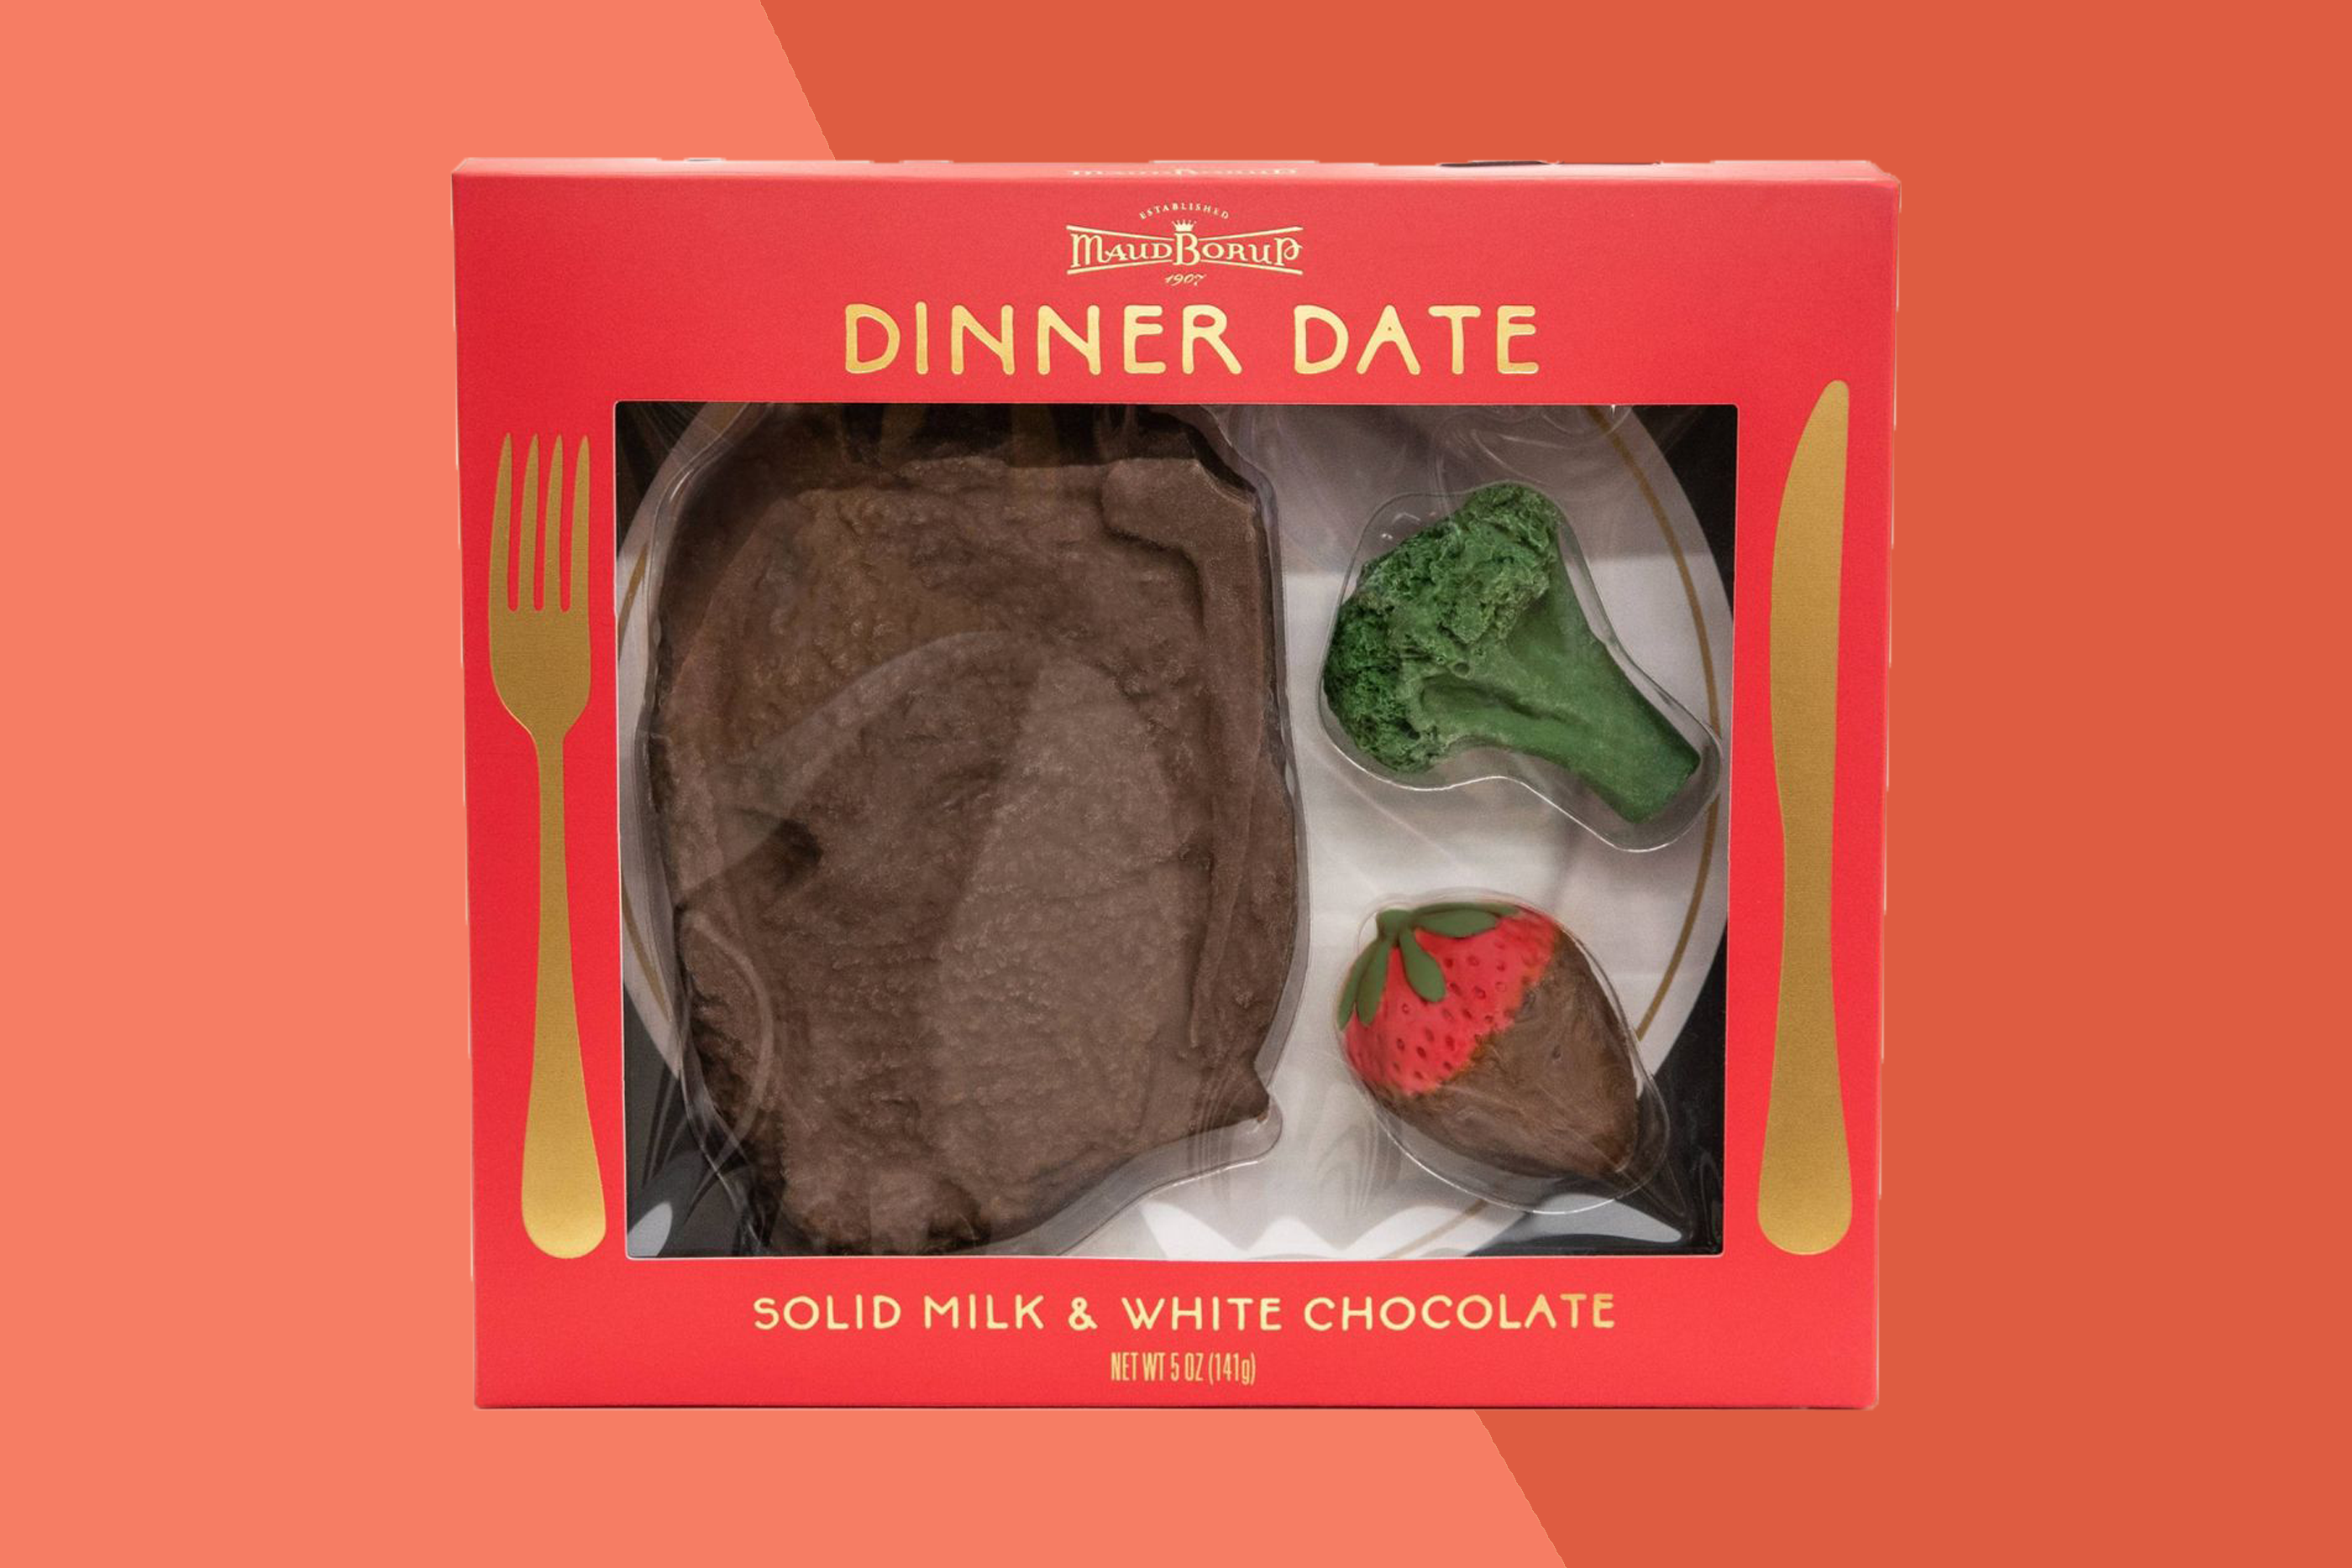 maud borup chocolate steak dinner date valentine's day set